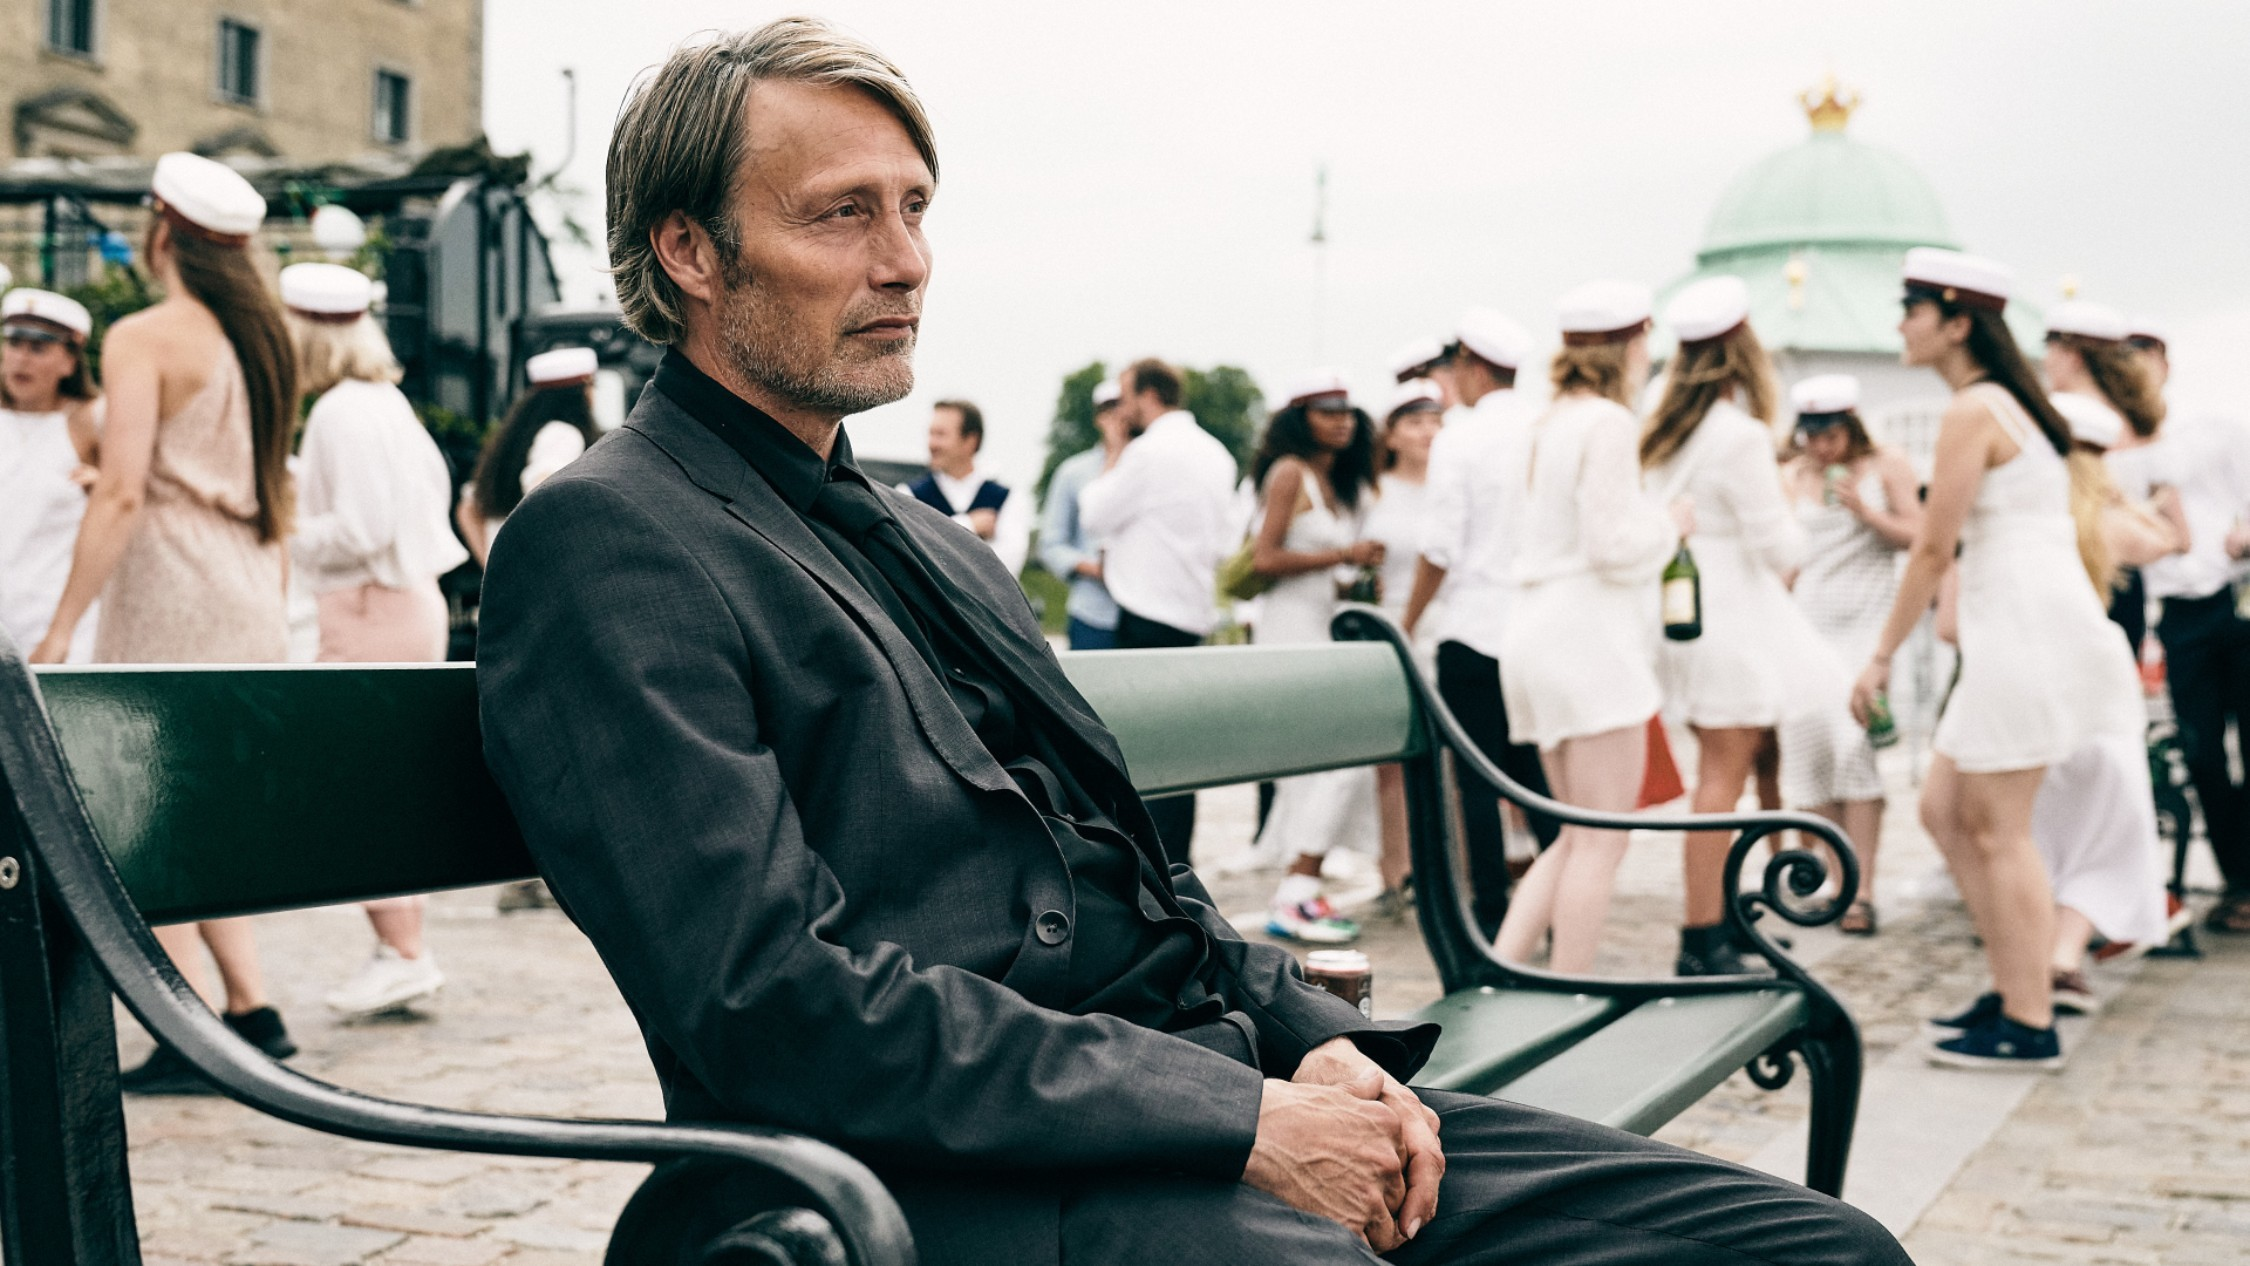 Mads MIkkeslen in a dark suit sits on a bench with students in sailor outfits in the background